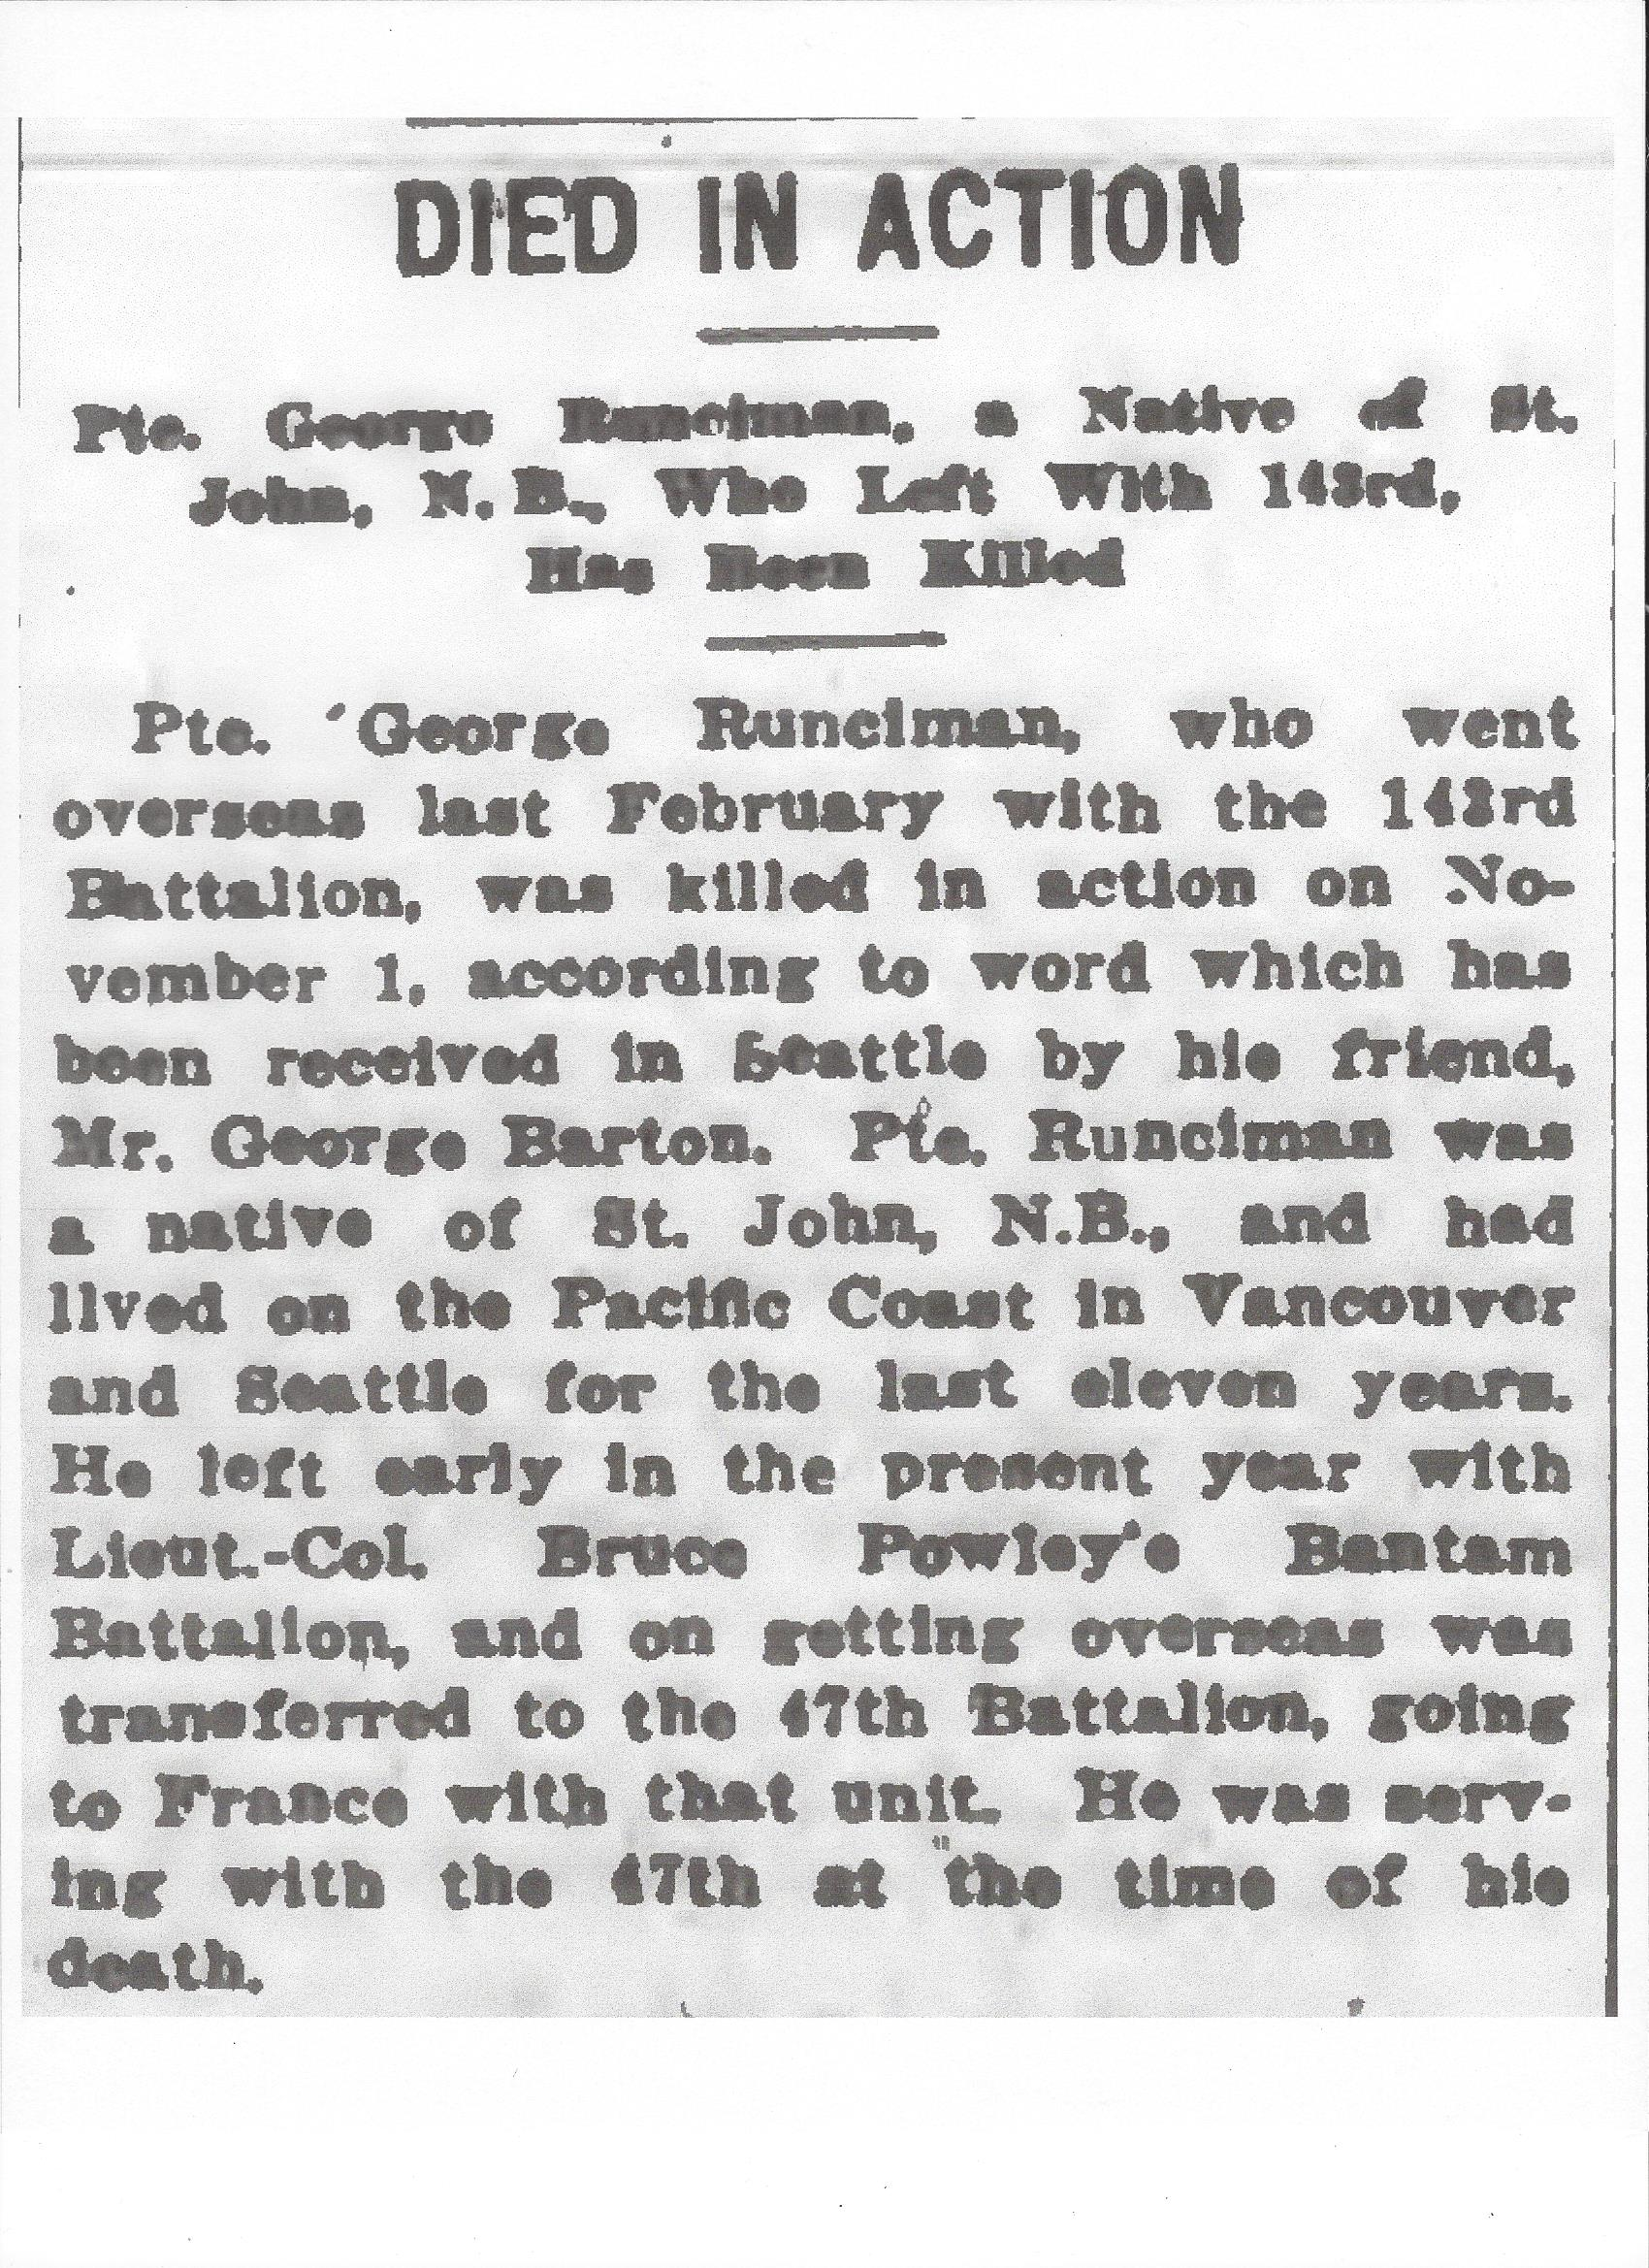 Newspaper Clipping– Newspaper clipping from the Daily Colonist of November 21, 1917. Image taken from web address of http://archive.org/stream/dailycolonist59y298uvic#page/n0/mode/1up